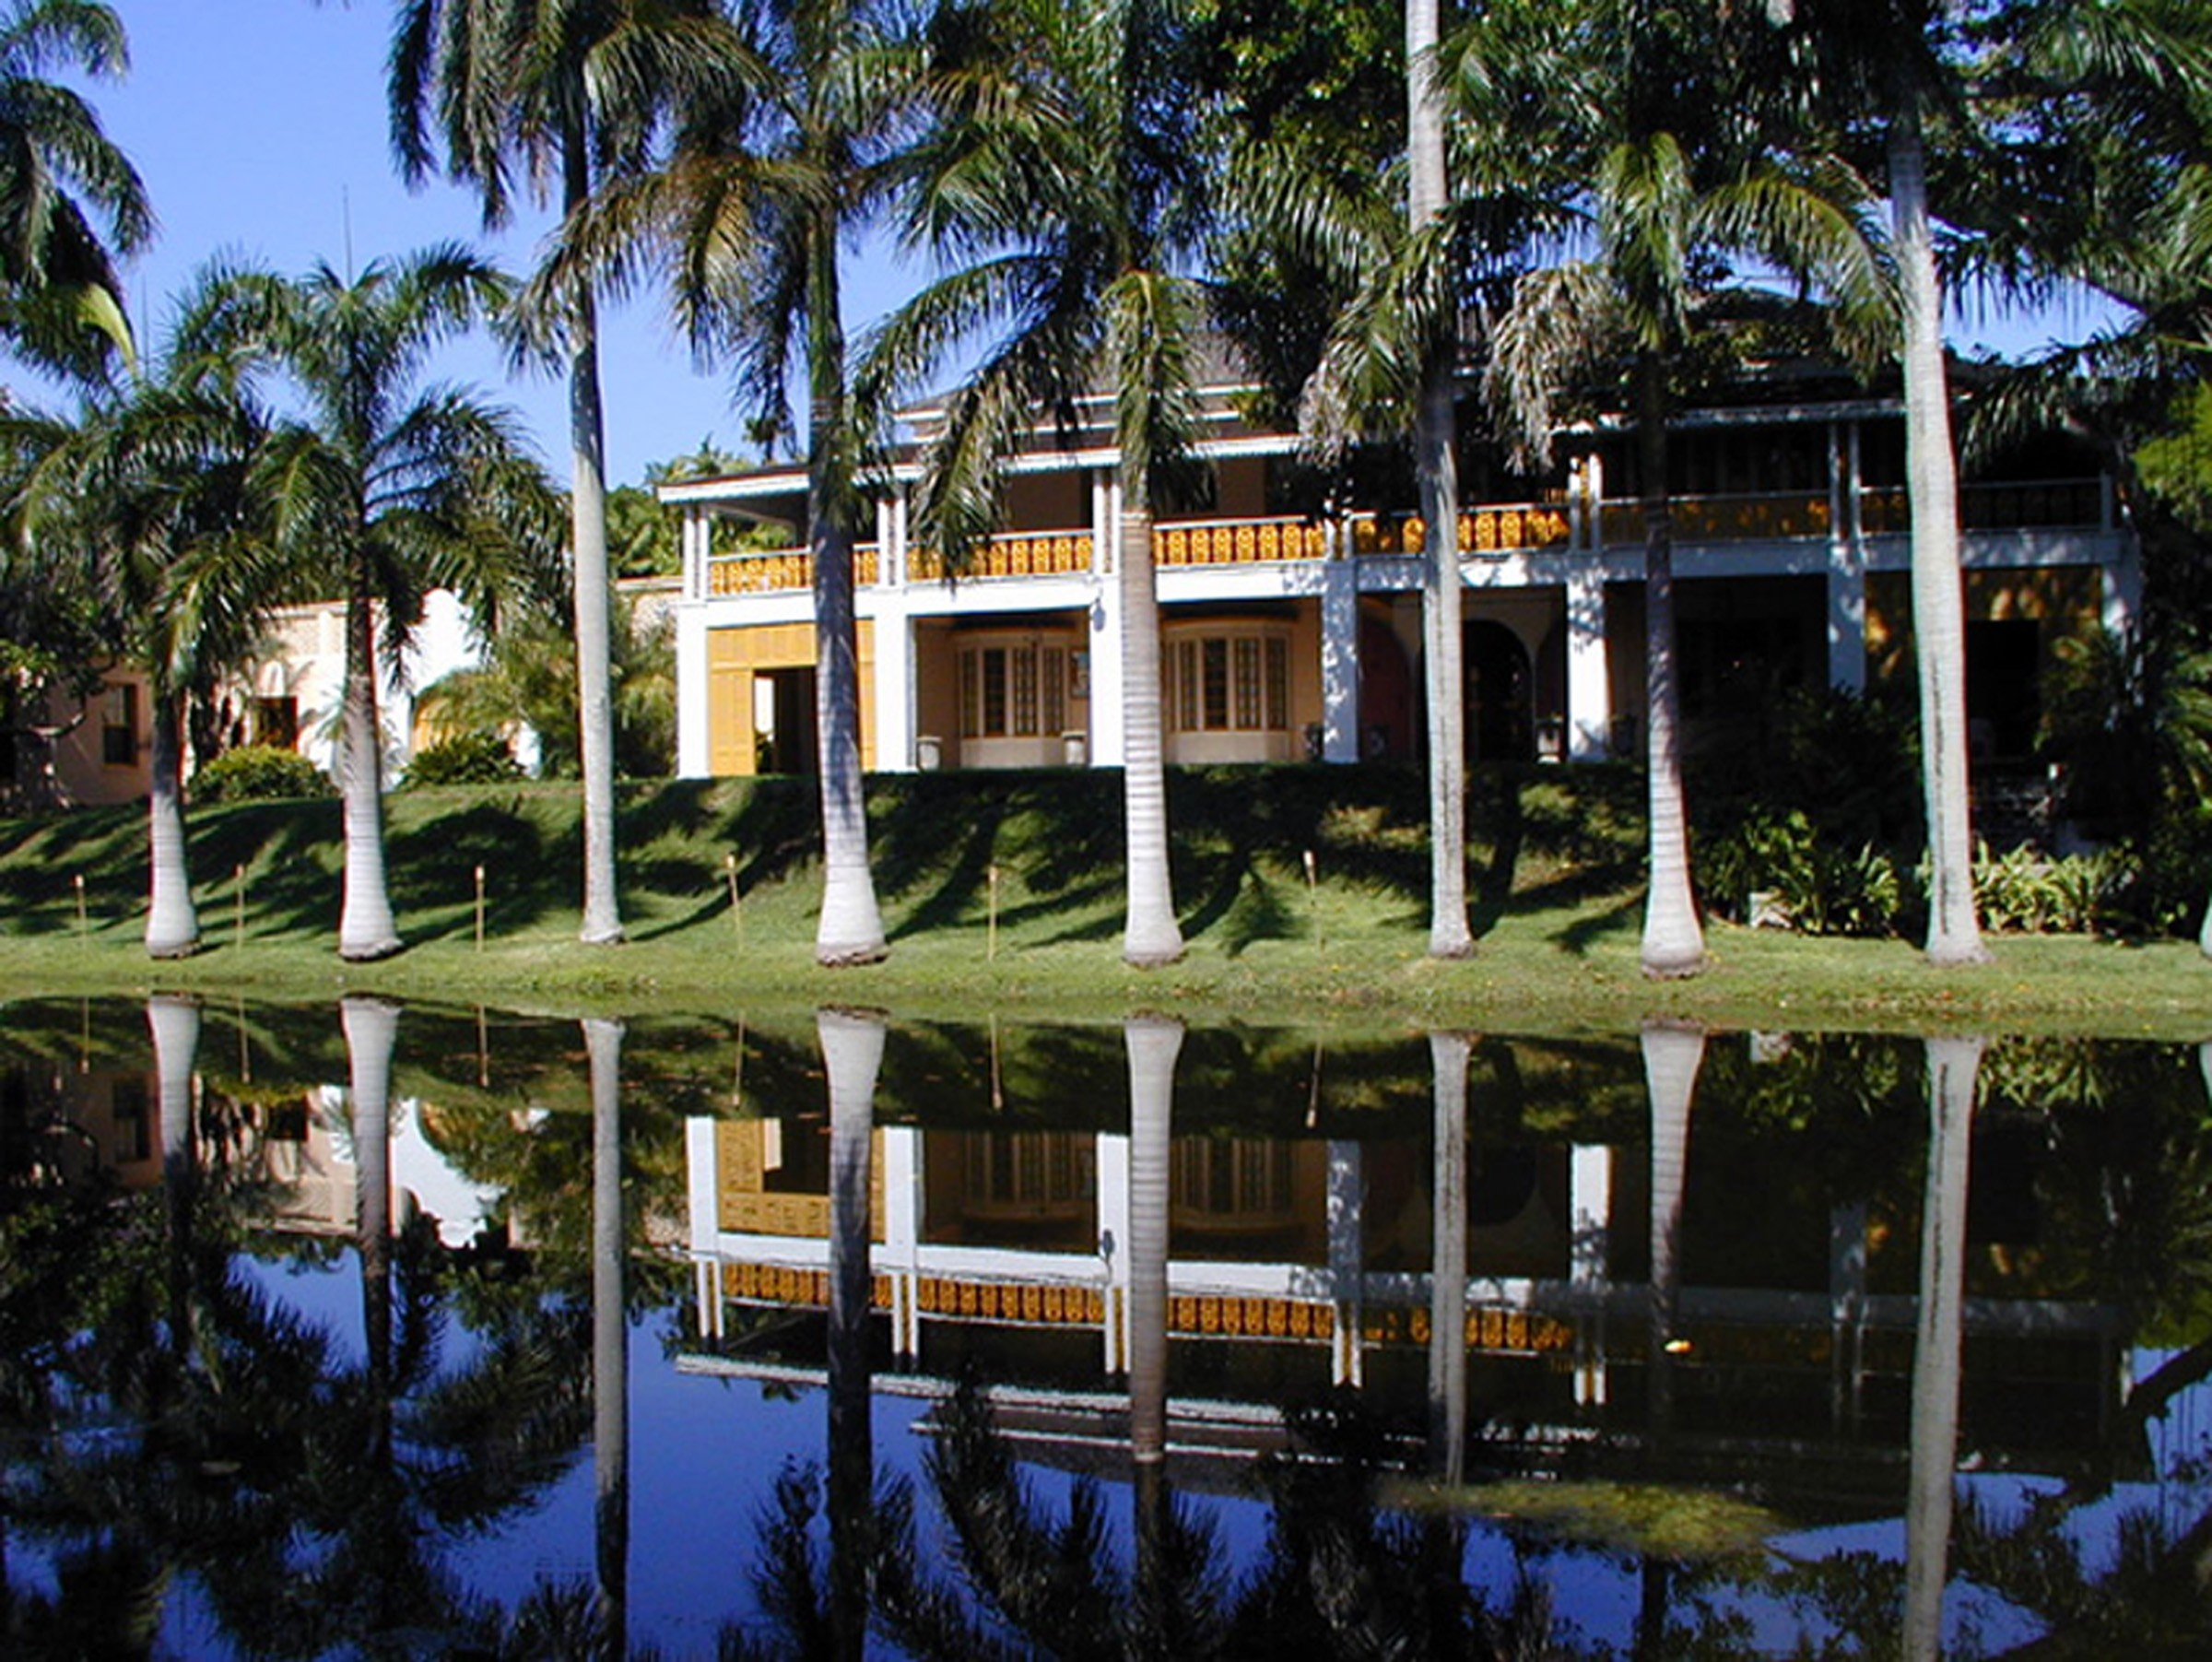 Gorgeous water-front view of part of the Bonnet House